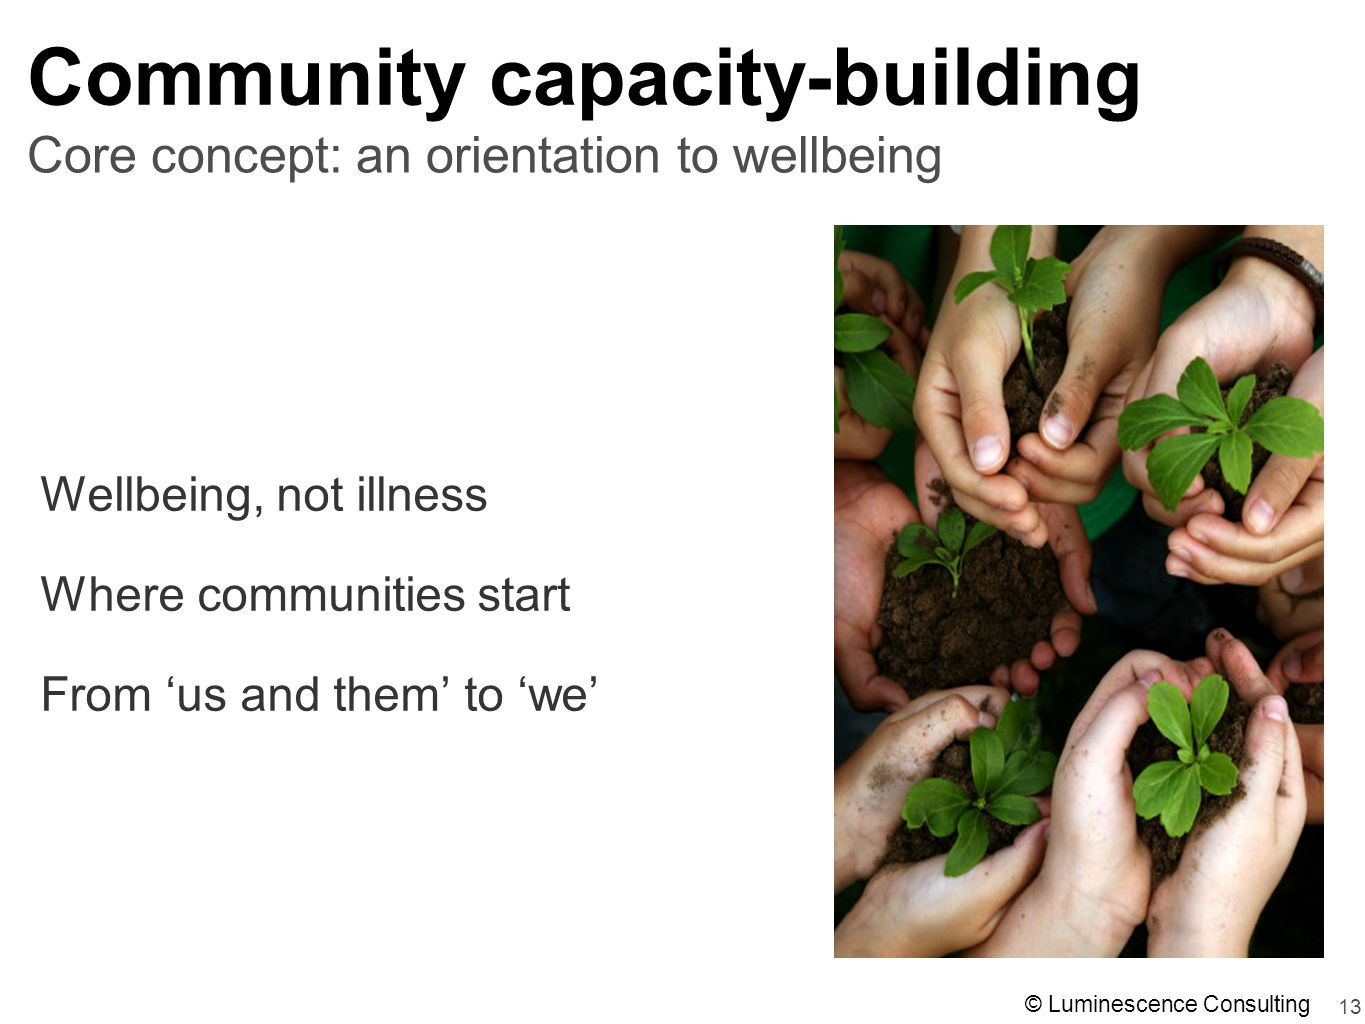 13 Community capacity-building Wellbeing, not illness Where communities start From 'us and them' to 'we' Core concept: an orientation to wellbeing © Luminescence Consulting